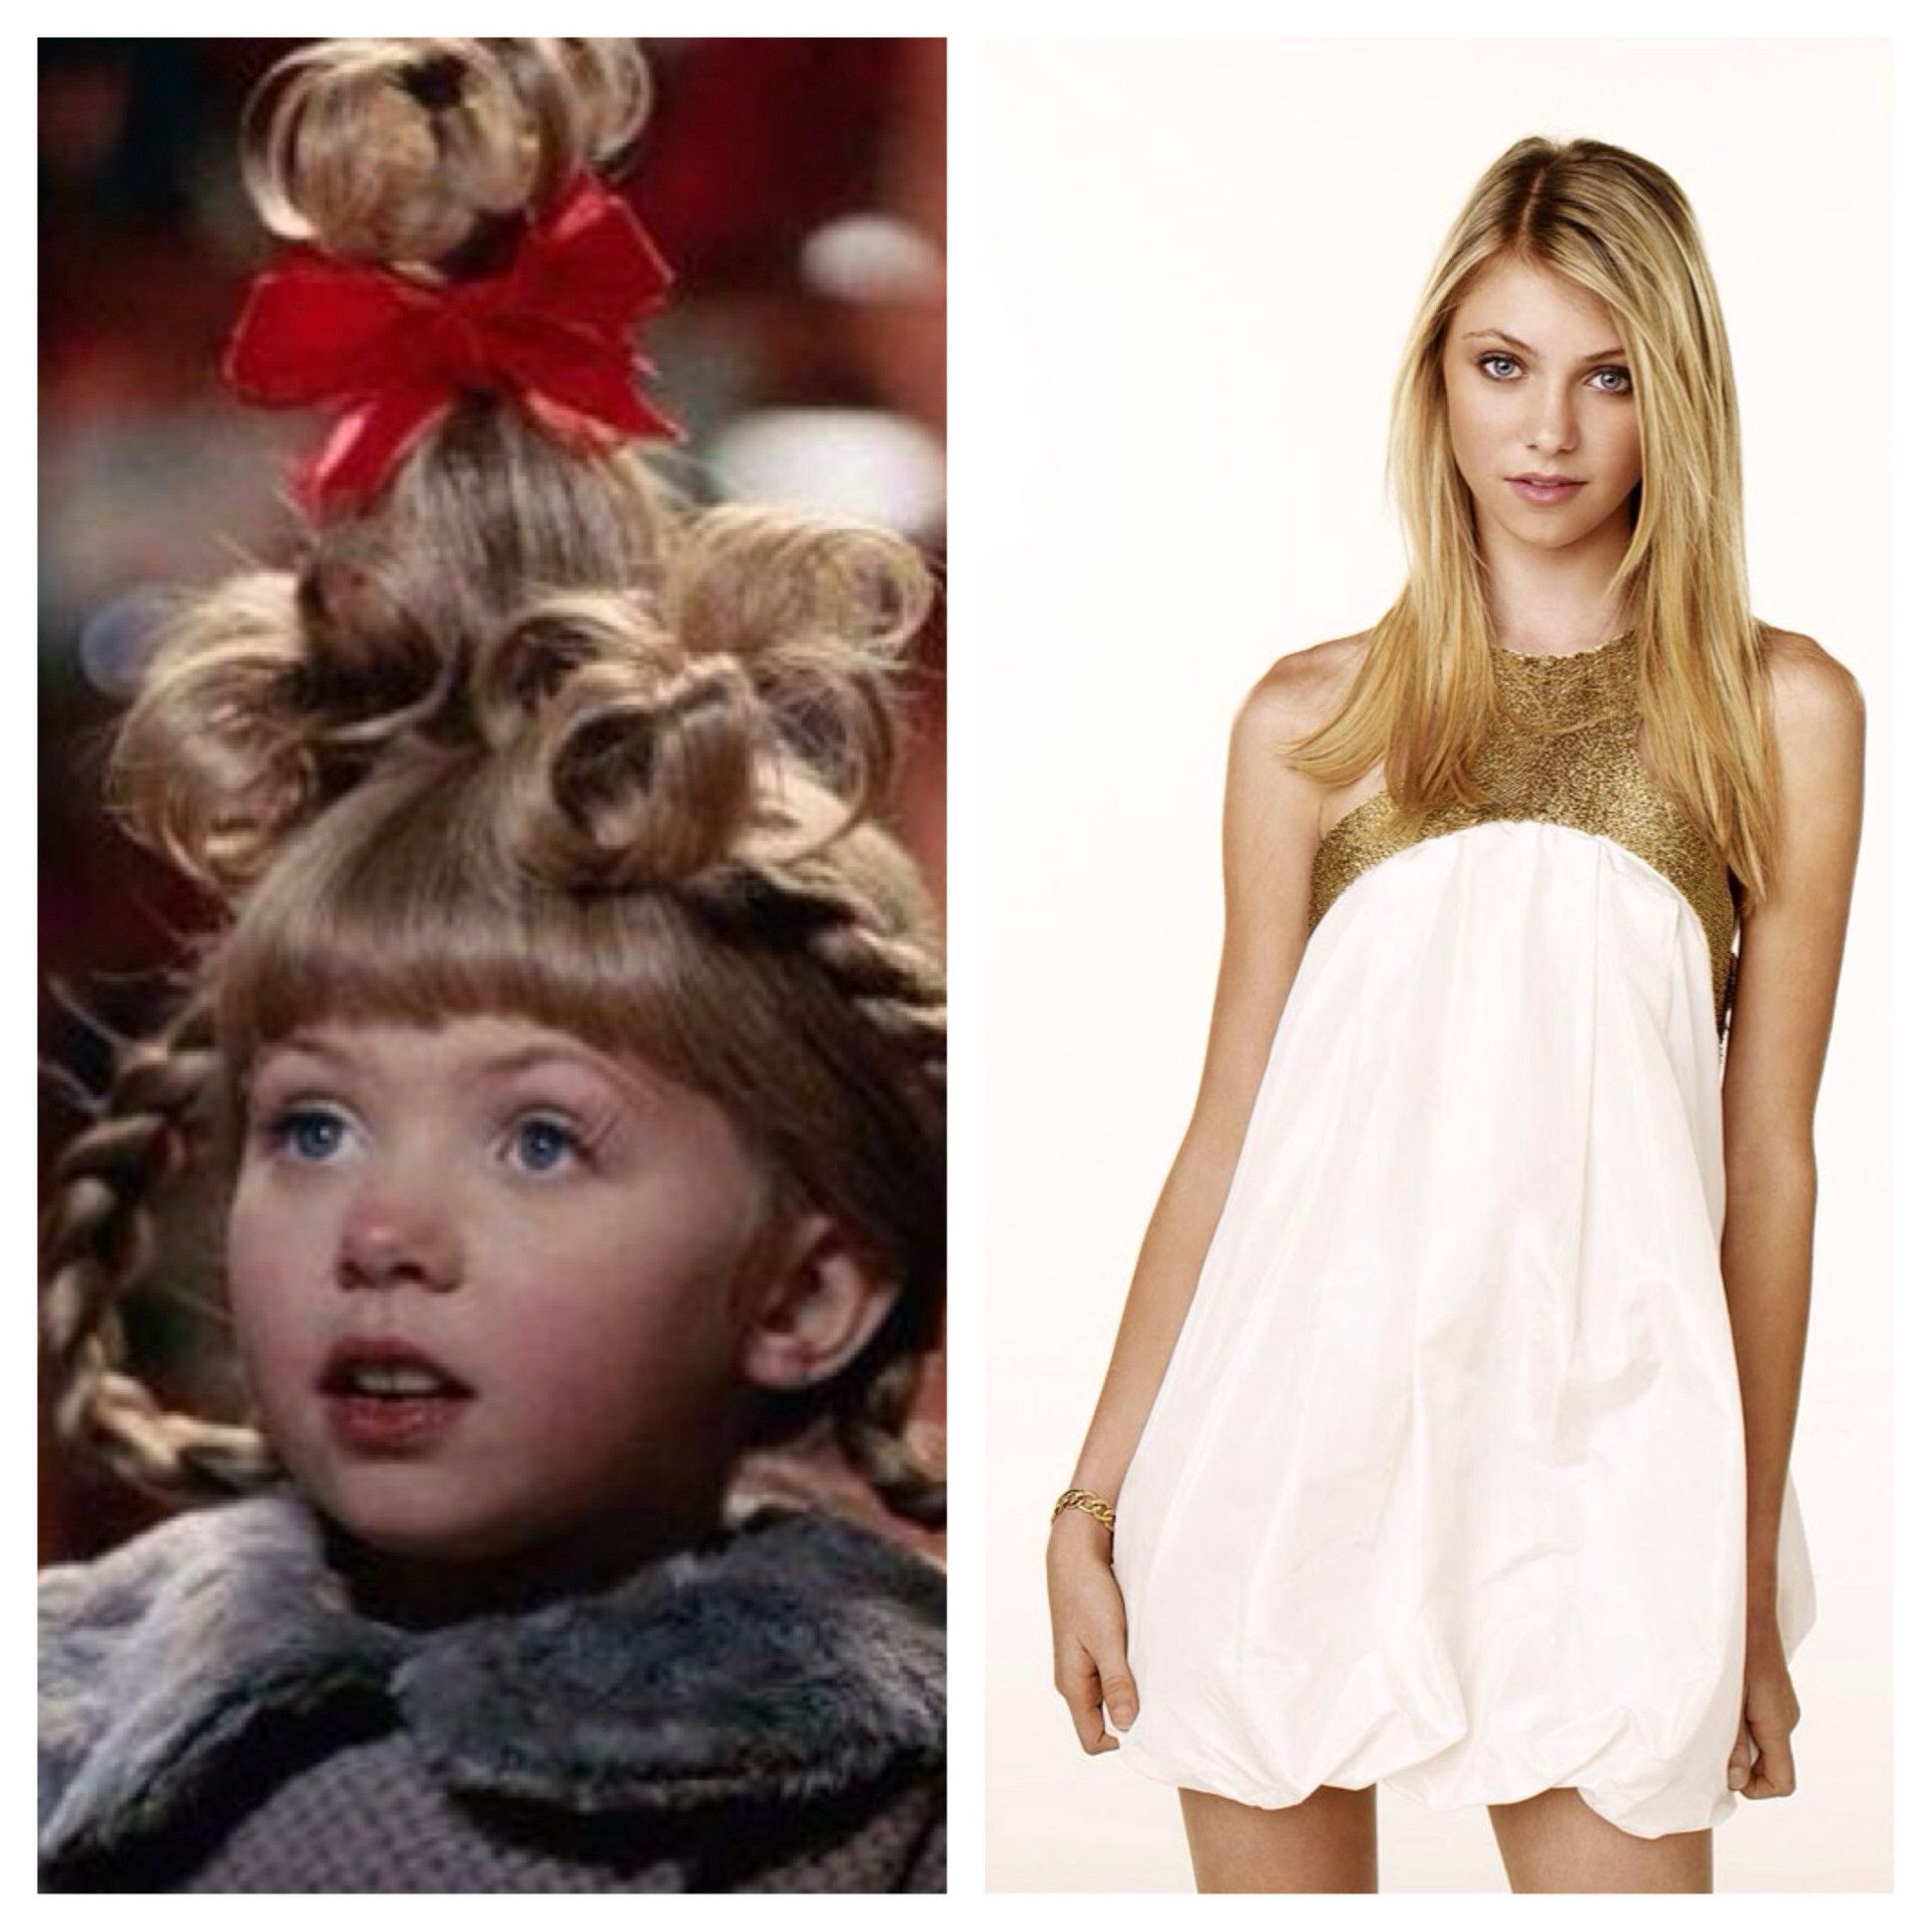 Cindy Lou Who Then And Now In 2019 Then And Now Celebs Cindy